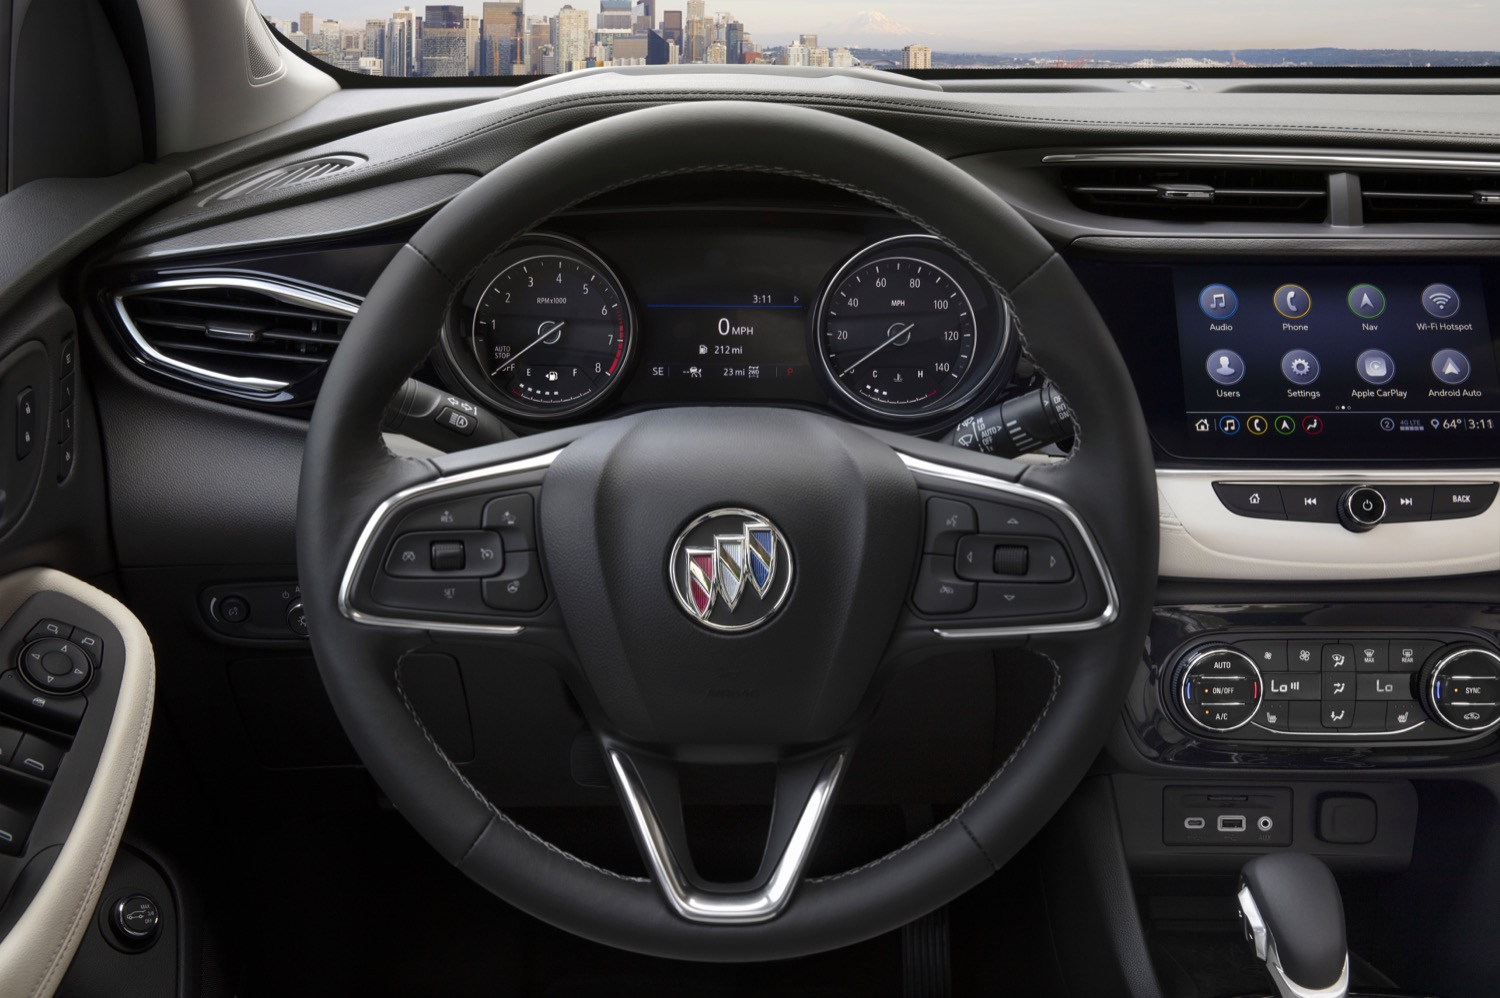 2022 Buick Encore Gx Info, Specs, Wiki | Gm Authority What Does A 2022 Buick Encore Cost